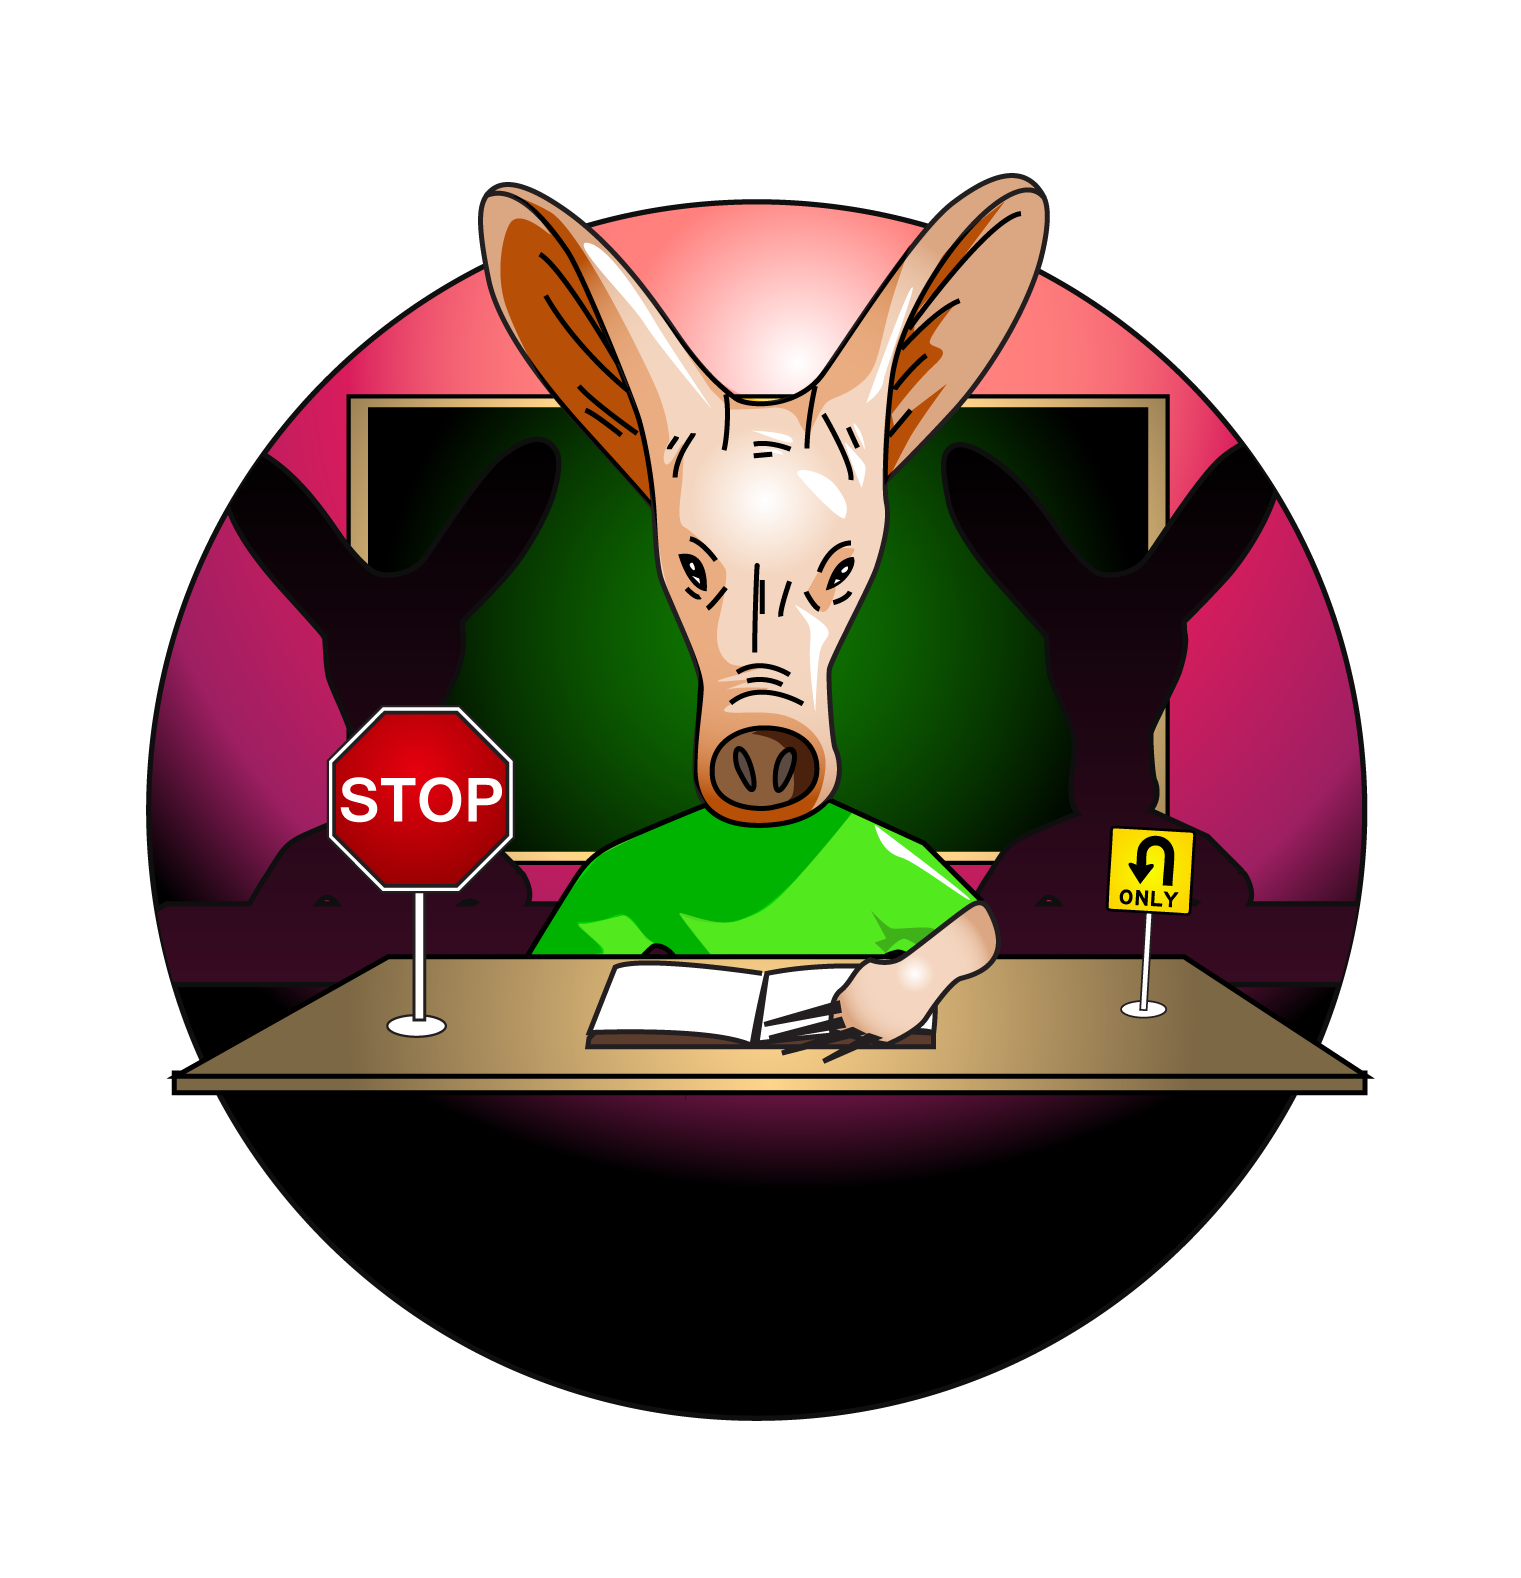 Driving clipart defensive driving. School on weekdays in